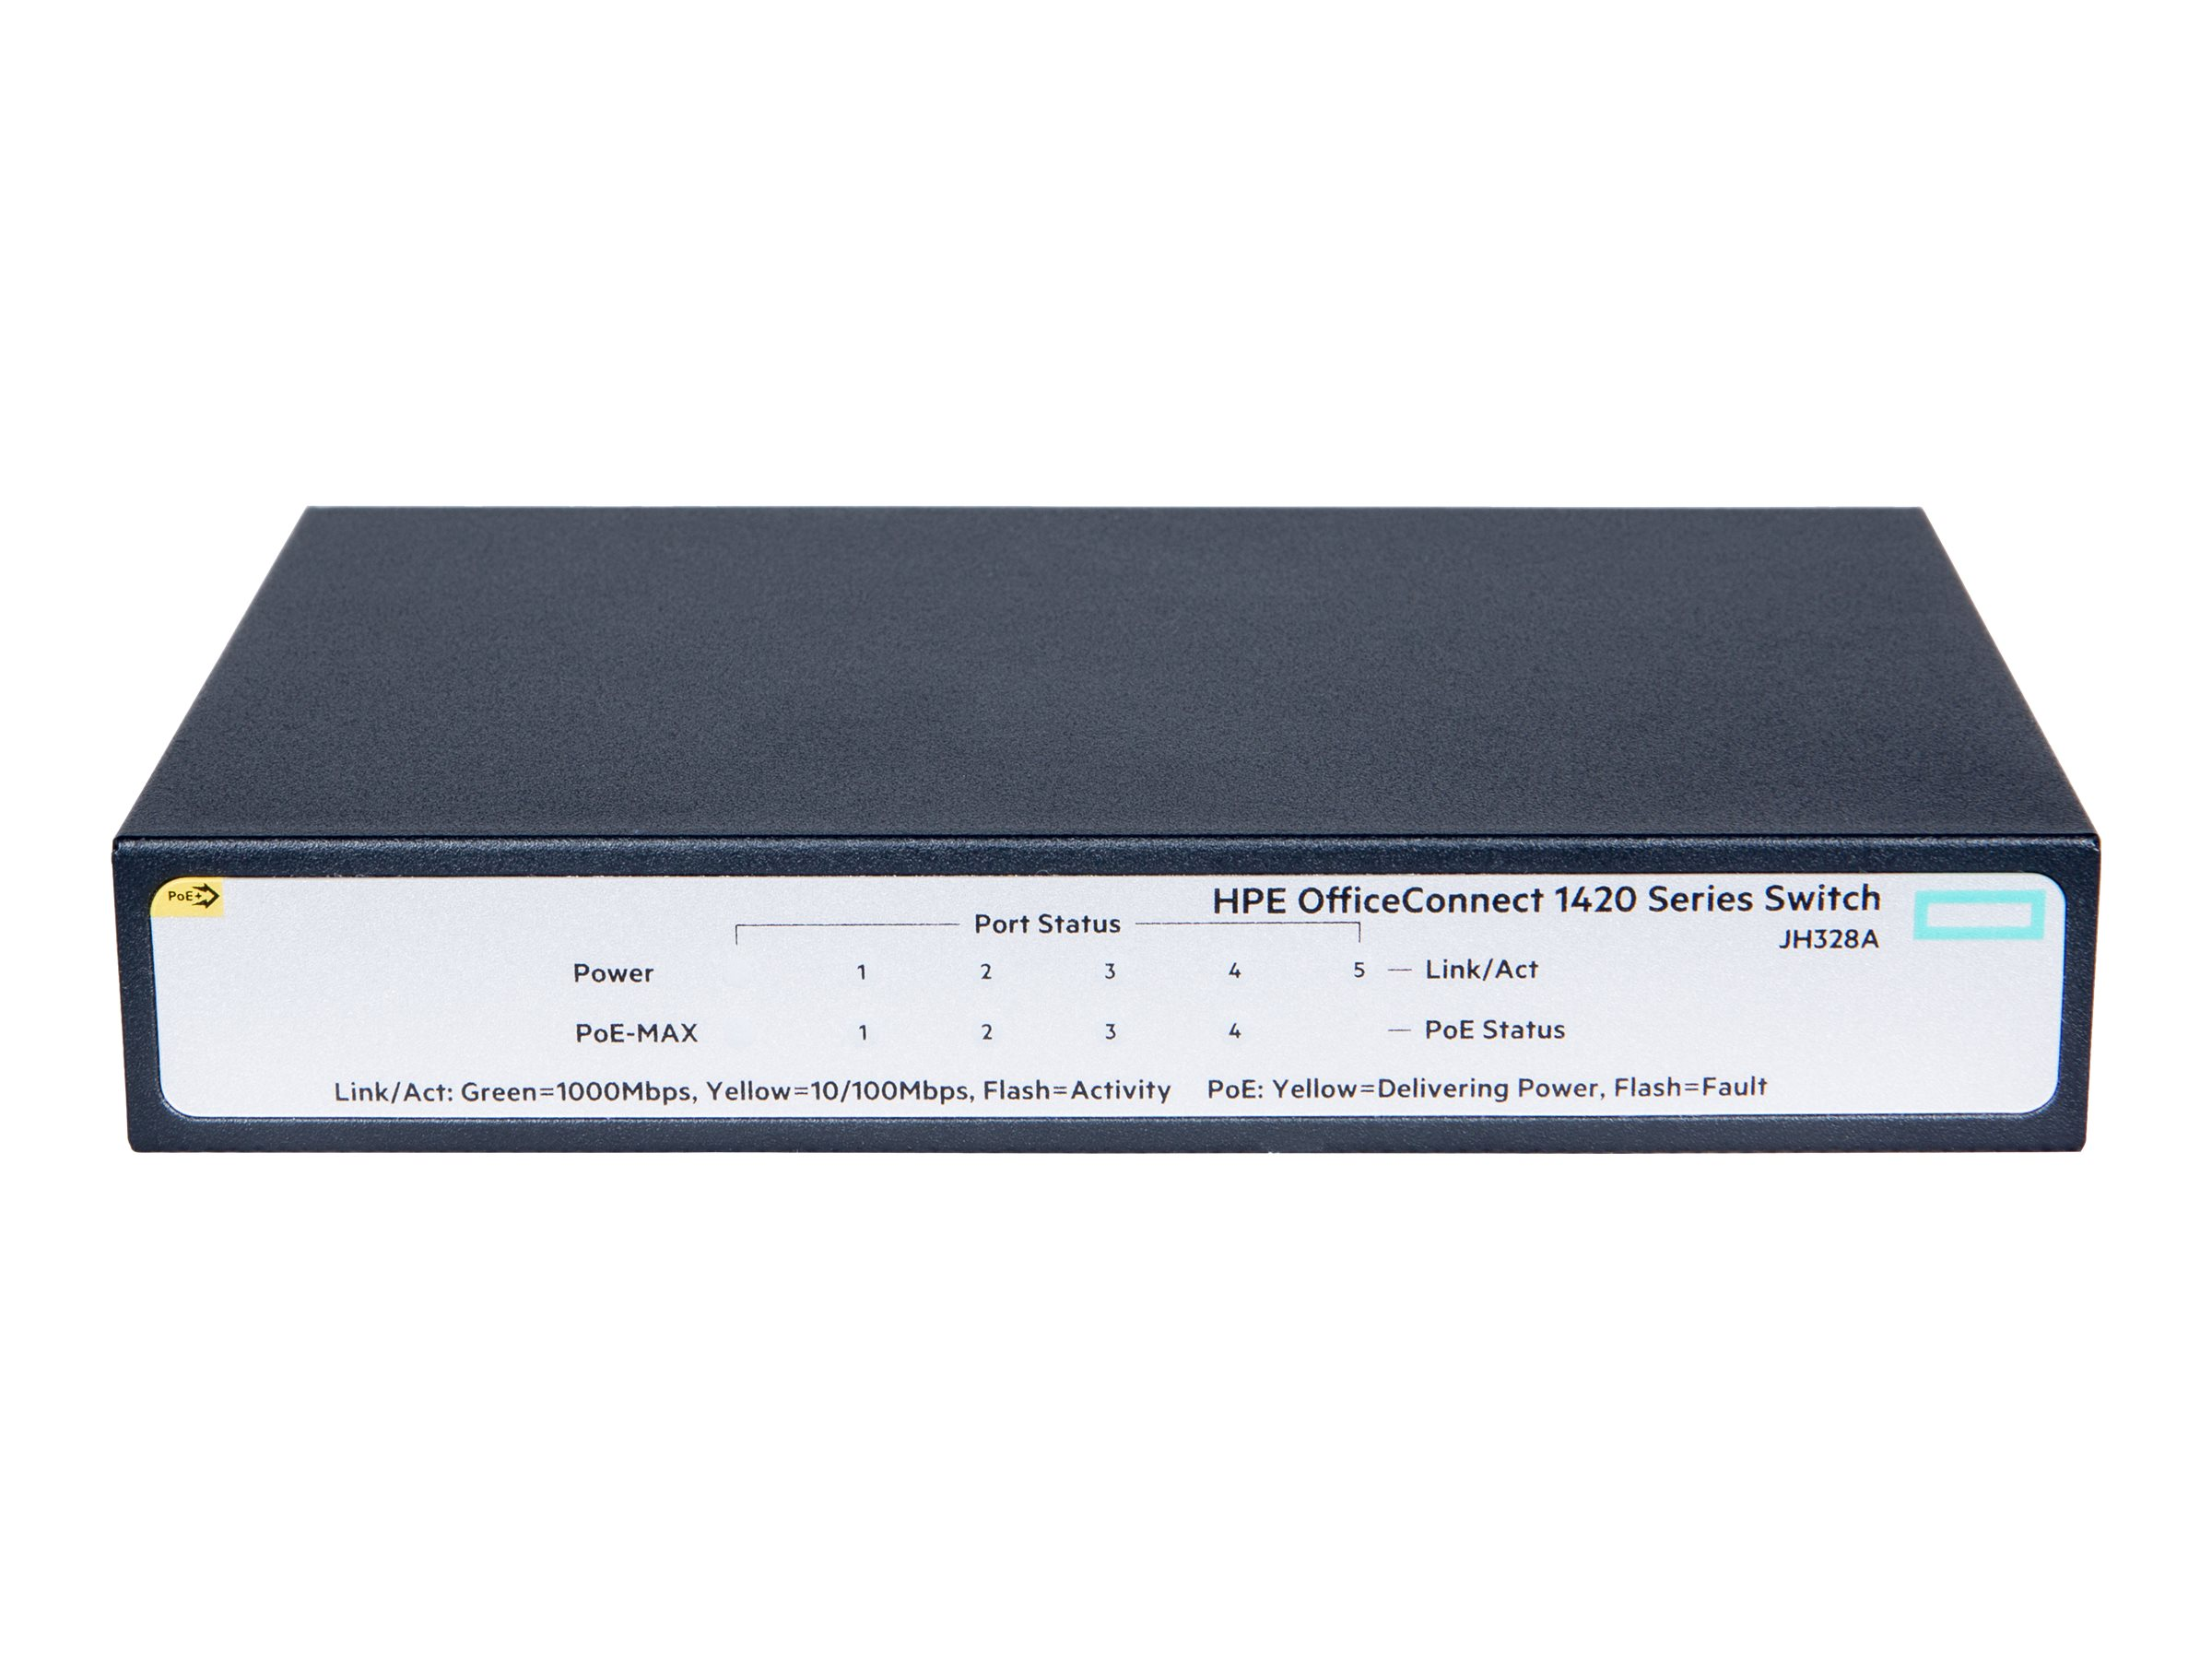 HPE OfficeConnect 1420 5G PoE+ - switch - 5 ports - unmanaged